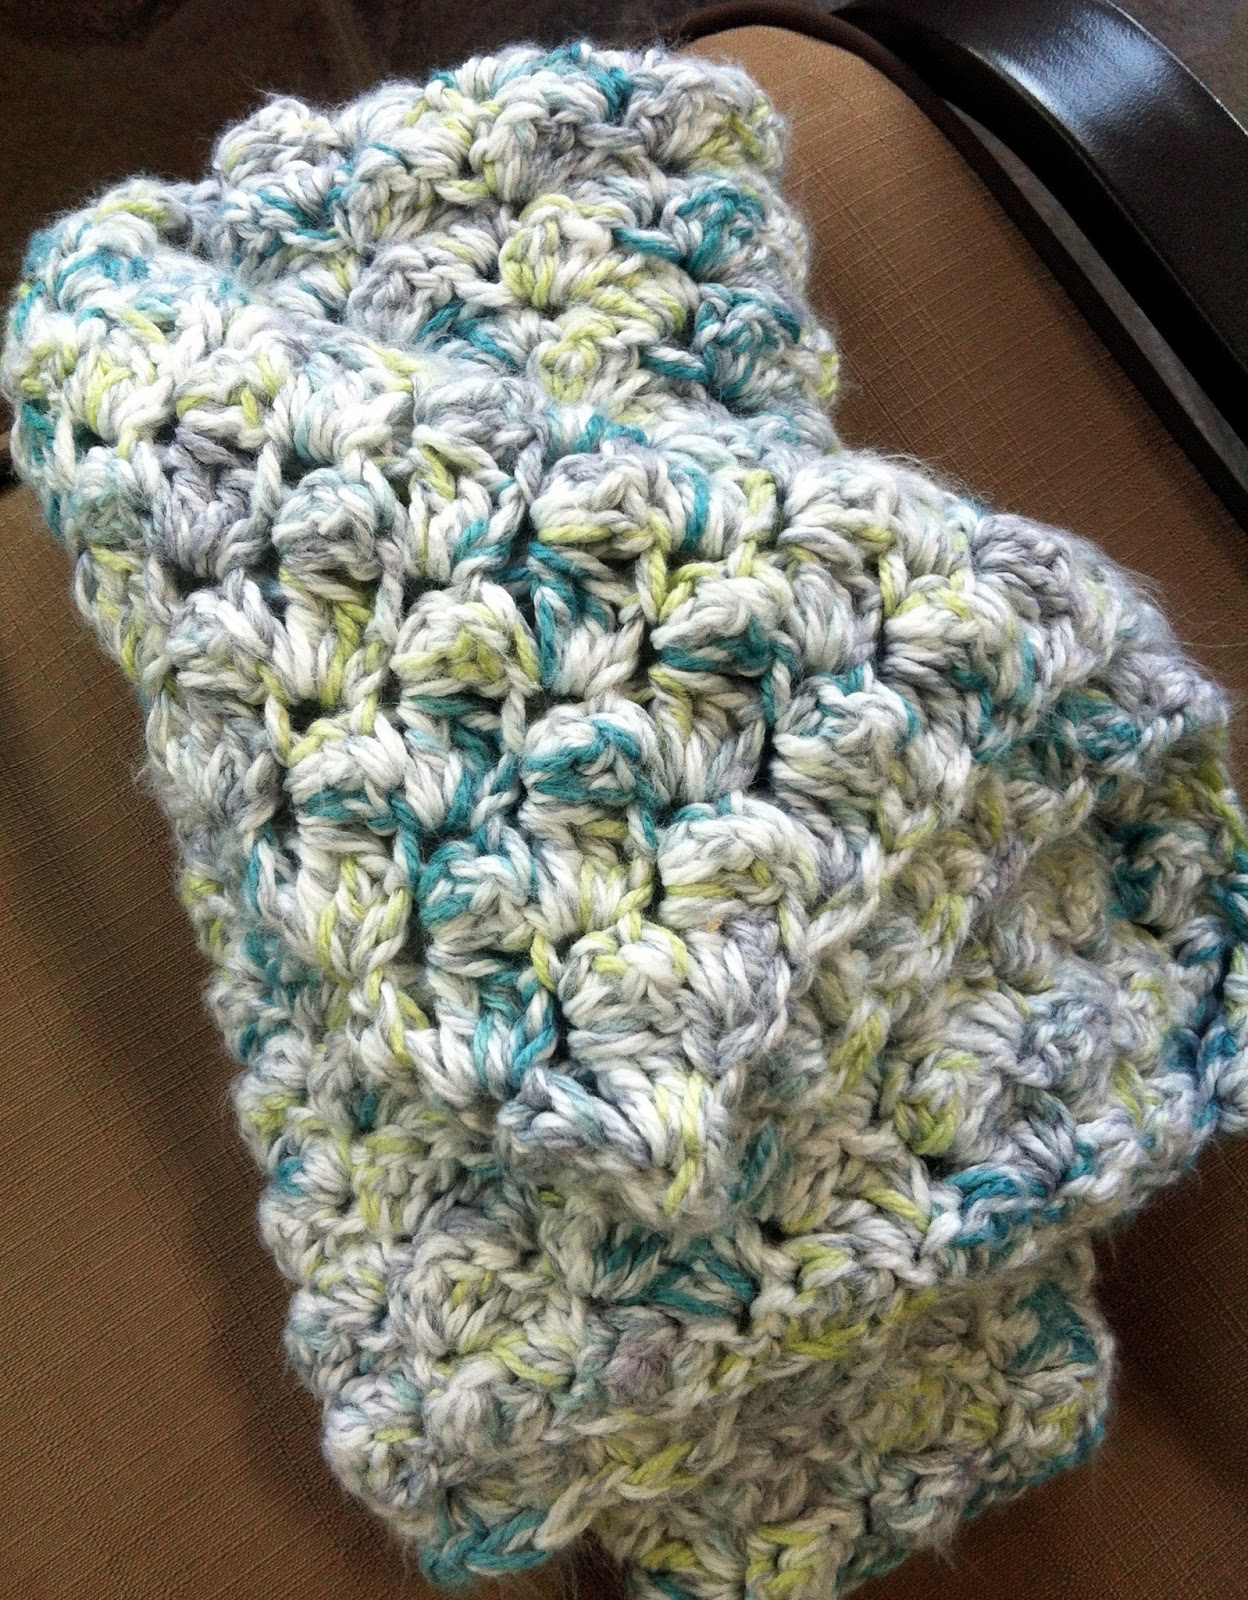 Crochet Patterns Bernat Blanket Yarn : Inspire Me Grey: Two Easy Crochet Baby Blankets